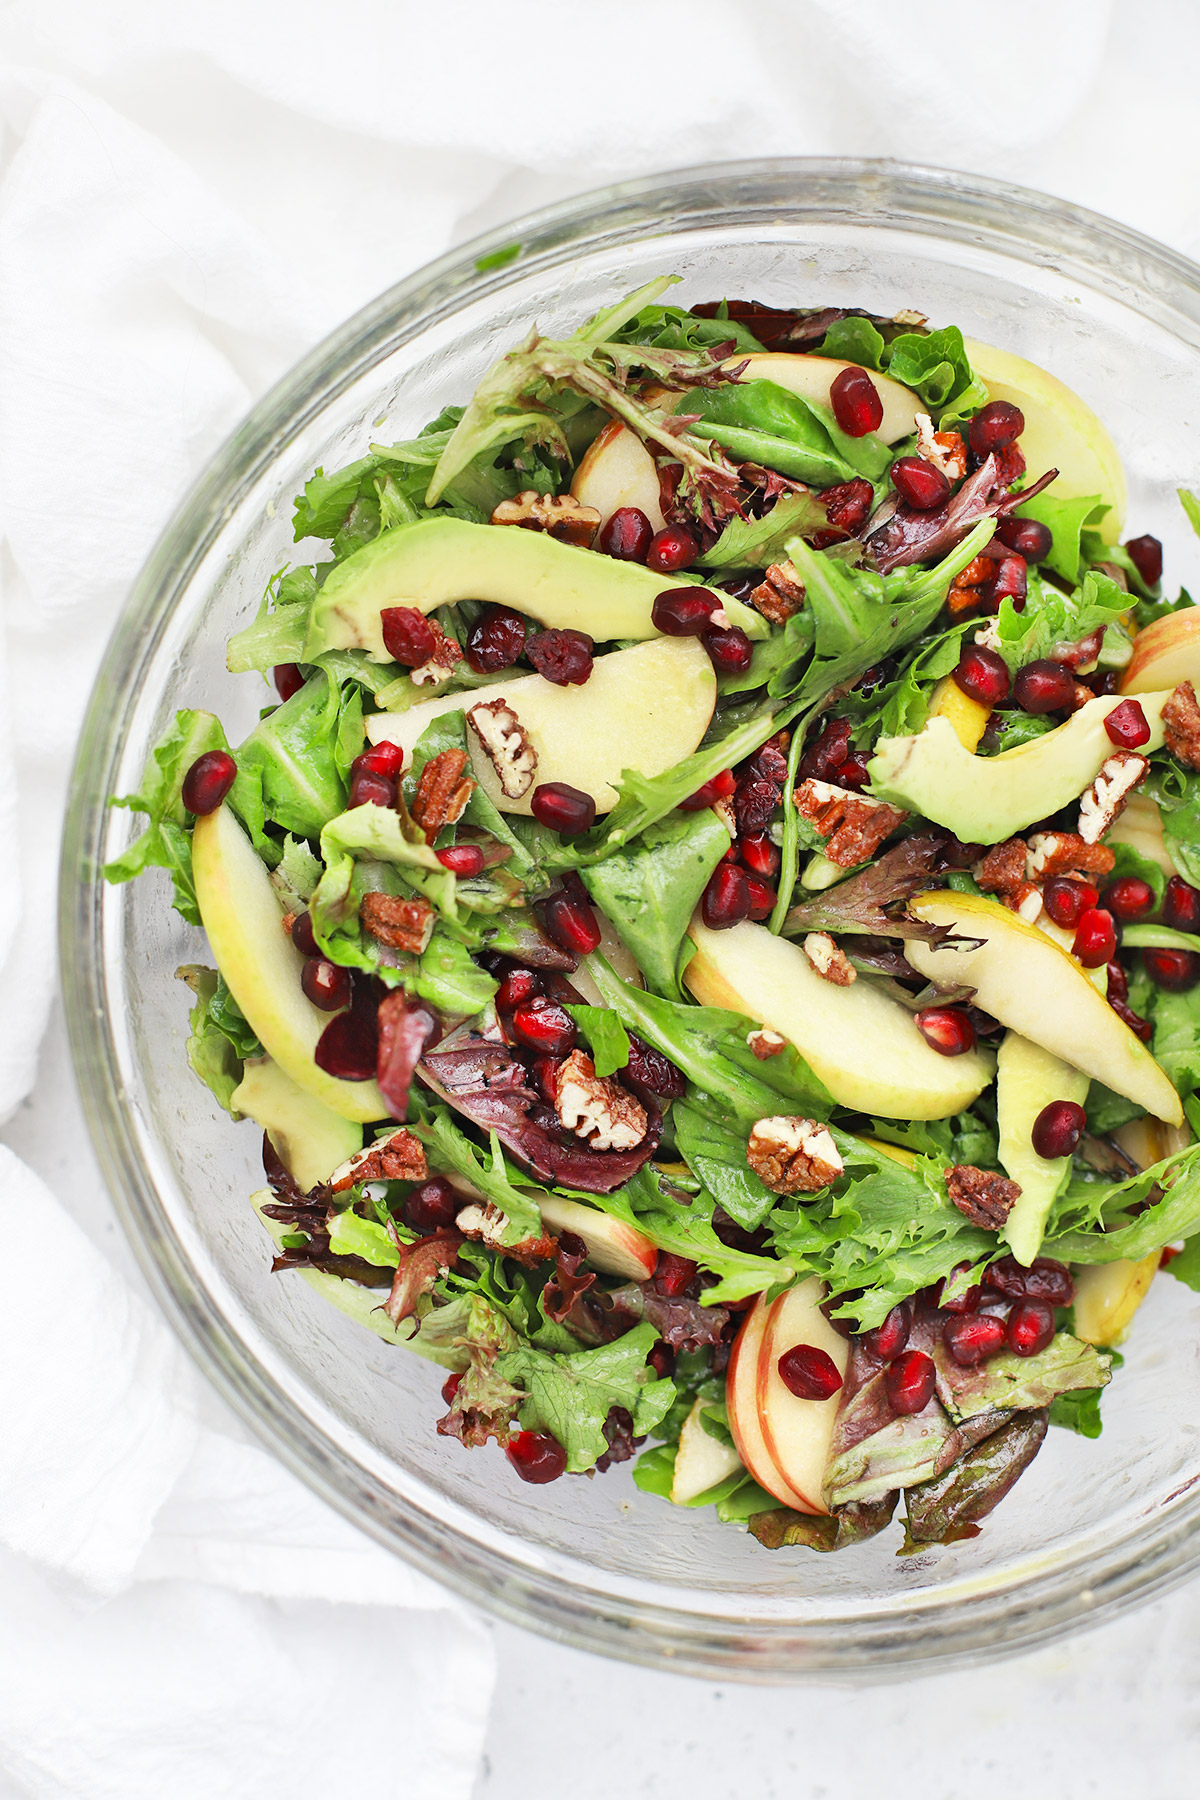 Overhead view of pear pomegranate salad in a glass bowl